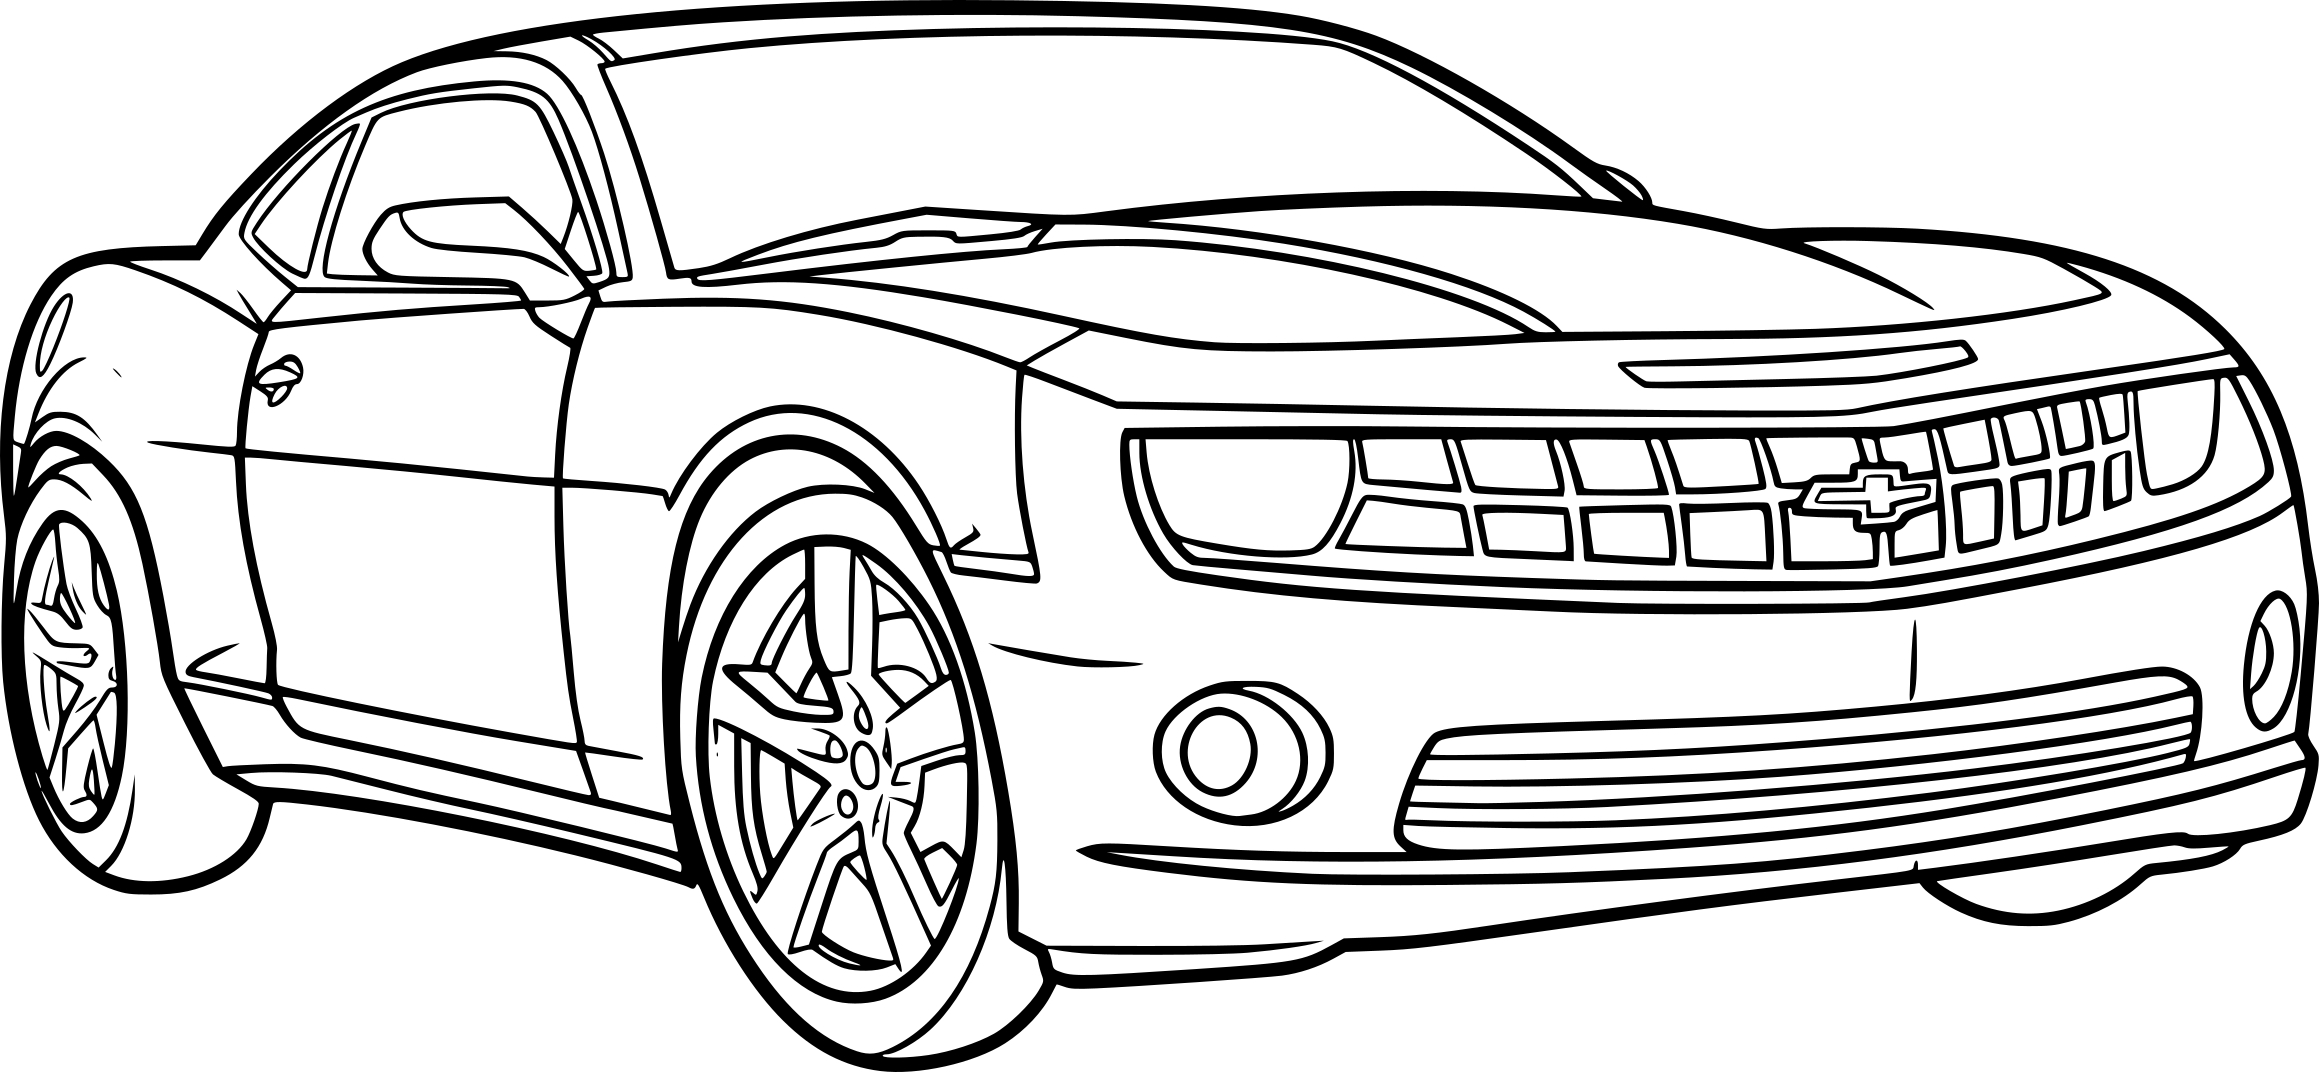 Coloriage voiture camaro imprimer for Plans de dessins de porche